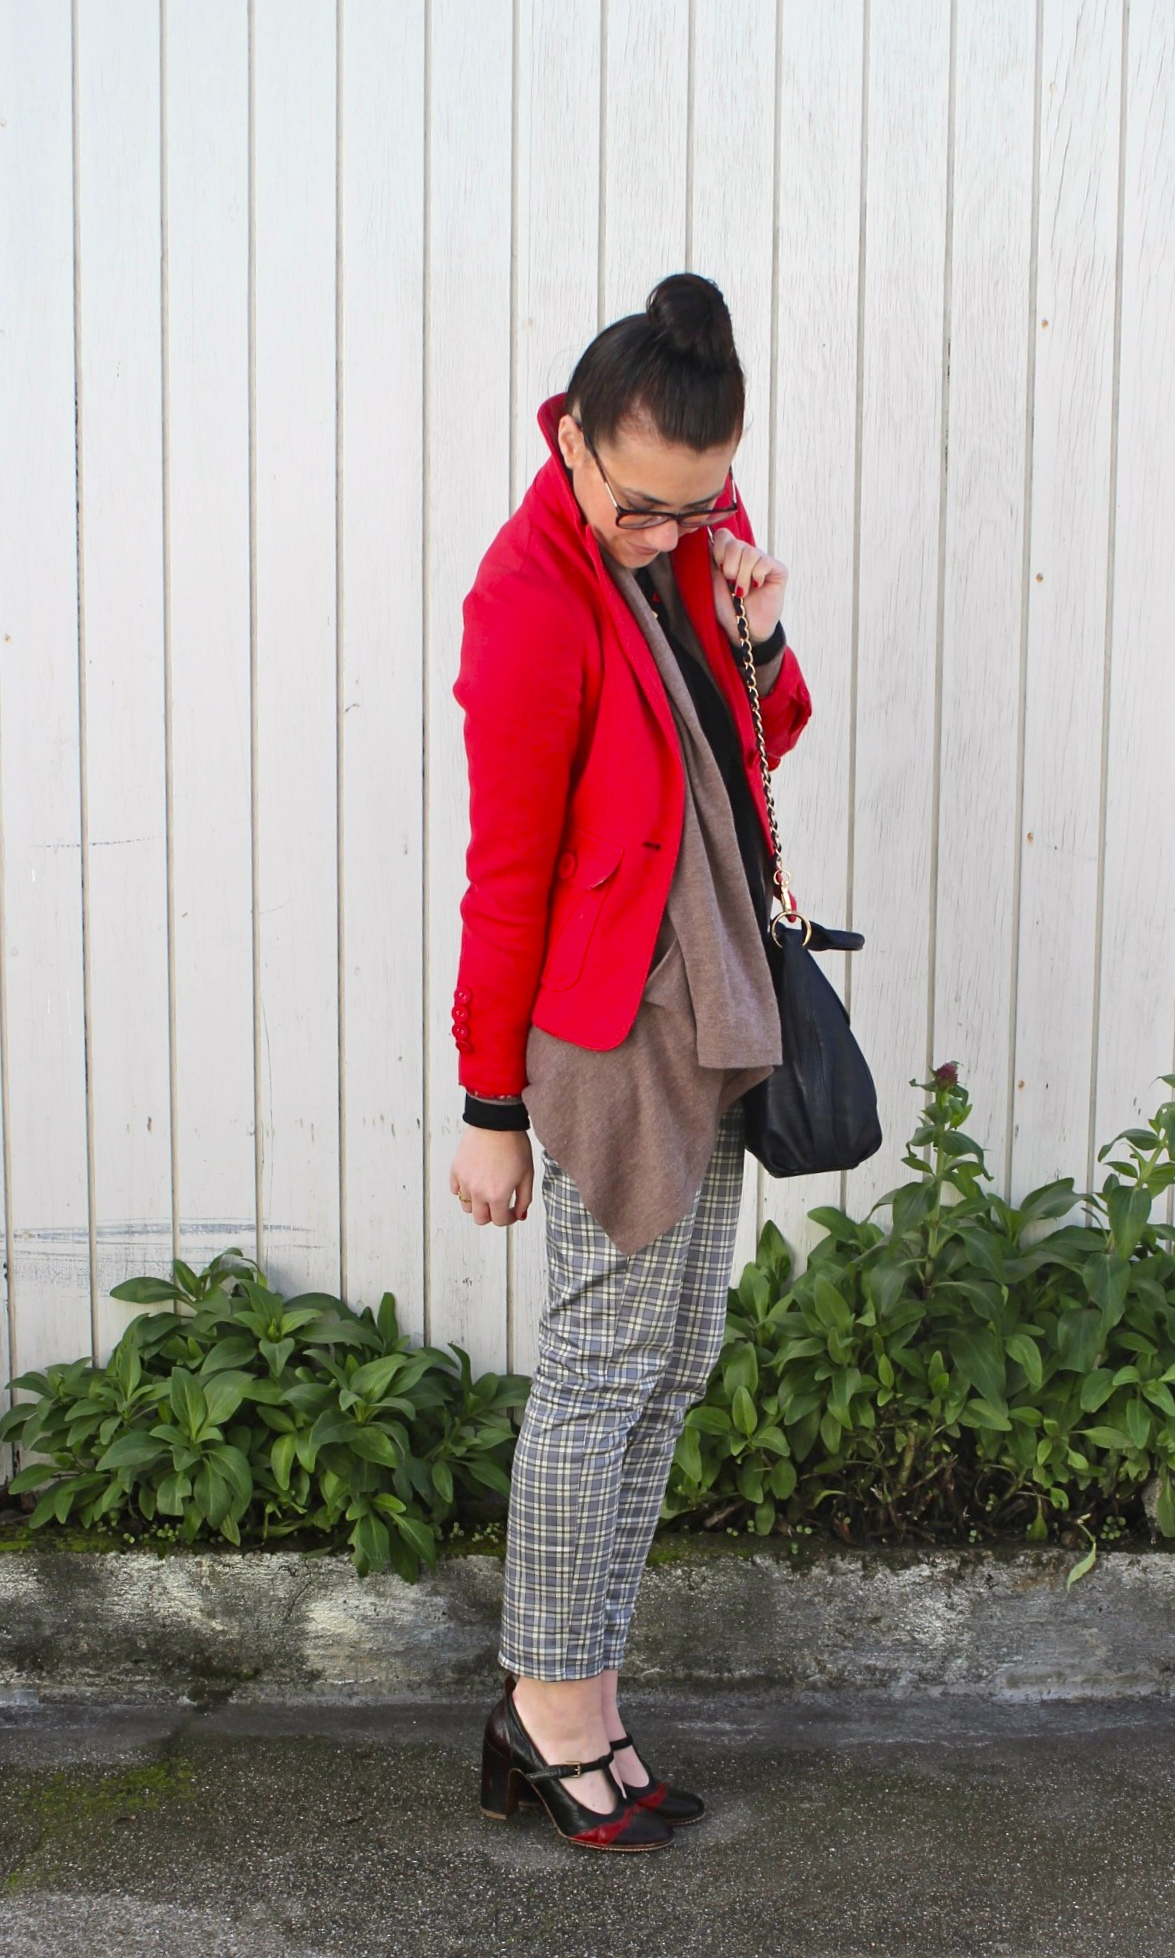 Red Blazer: Forever21; Draped Oatmeal Sweater: Jigsaw London; Black Top: Vince; Plaid Legging Pants: Uniqlo; Leather Color-Blocked Mary Janes: Frye; Geometric Necklace: Vintage, circa 1970s; Glasses: Prada